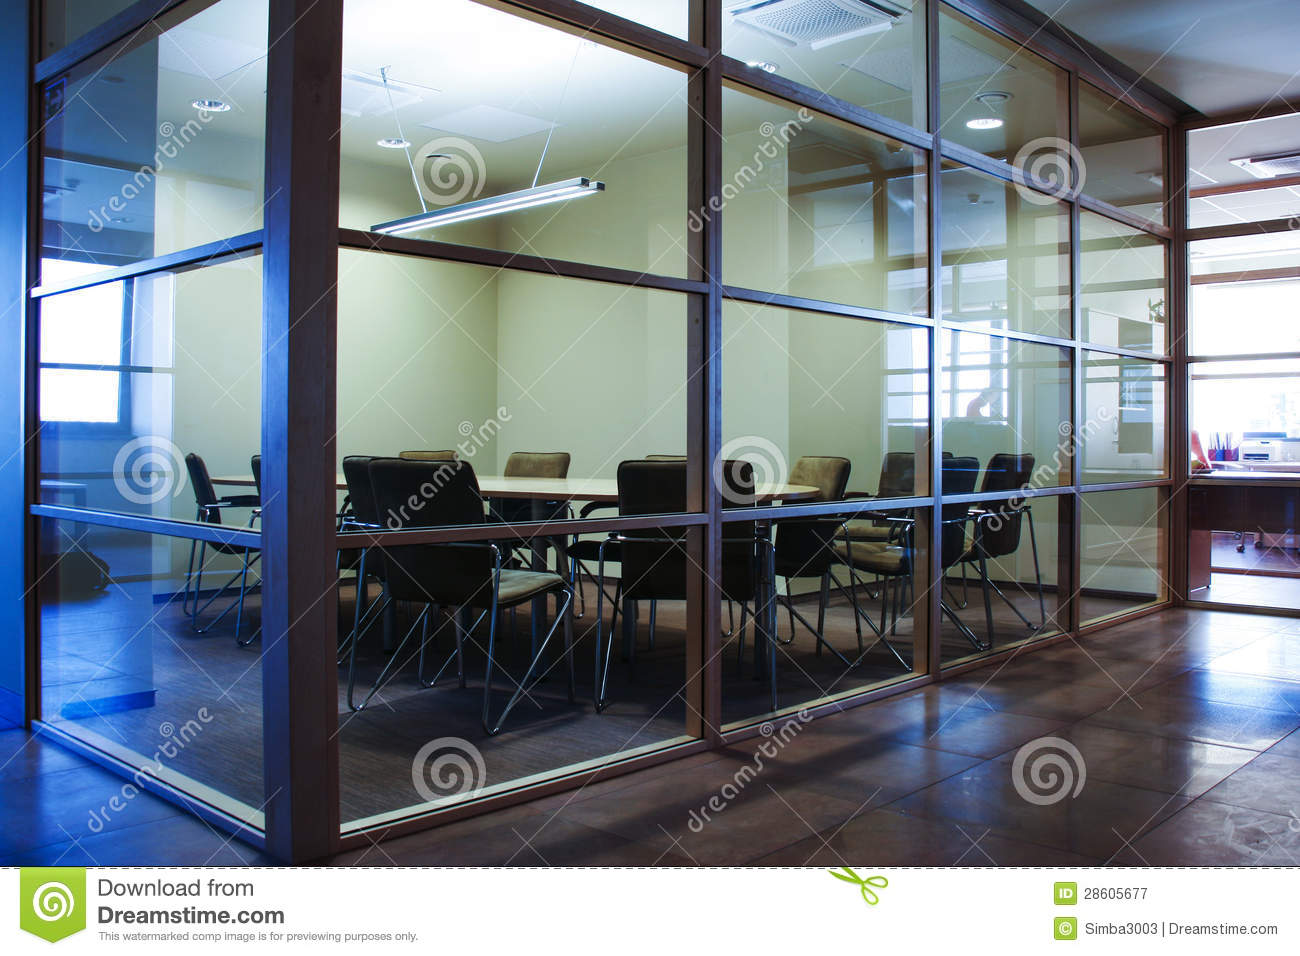 modern conference chairs desk chair nyc office room with glass walls royalty free stock photography - image: 28605677